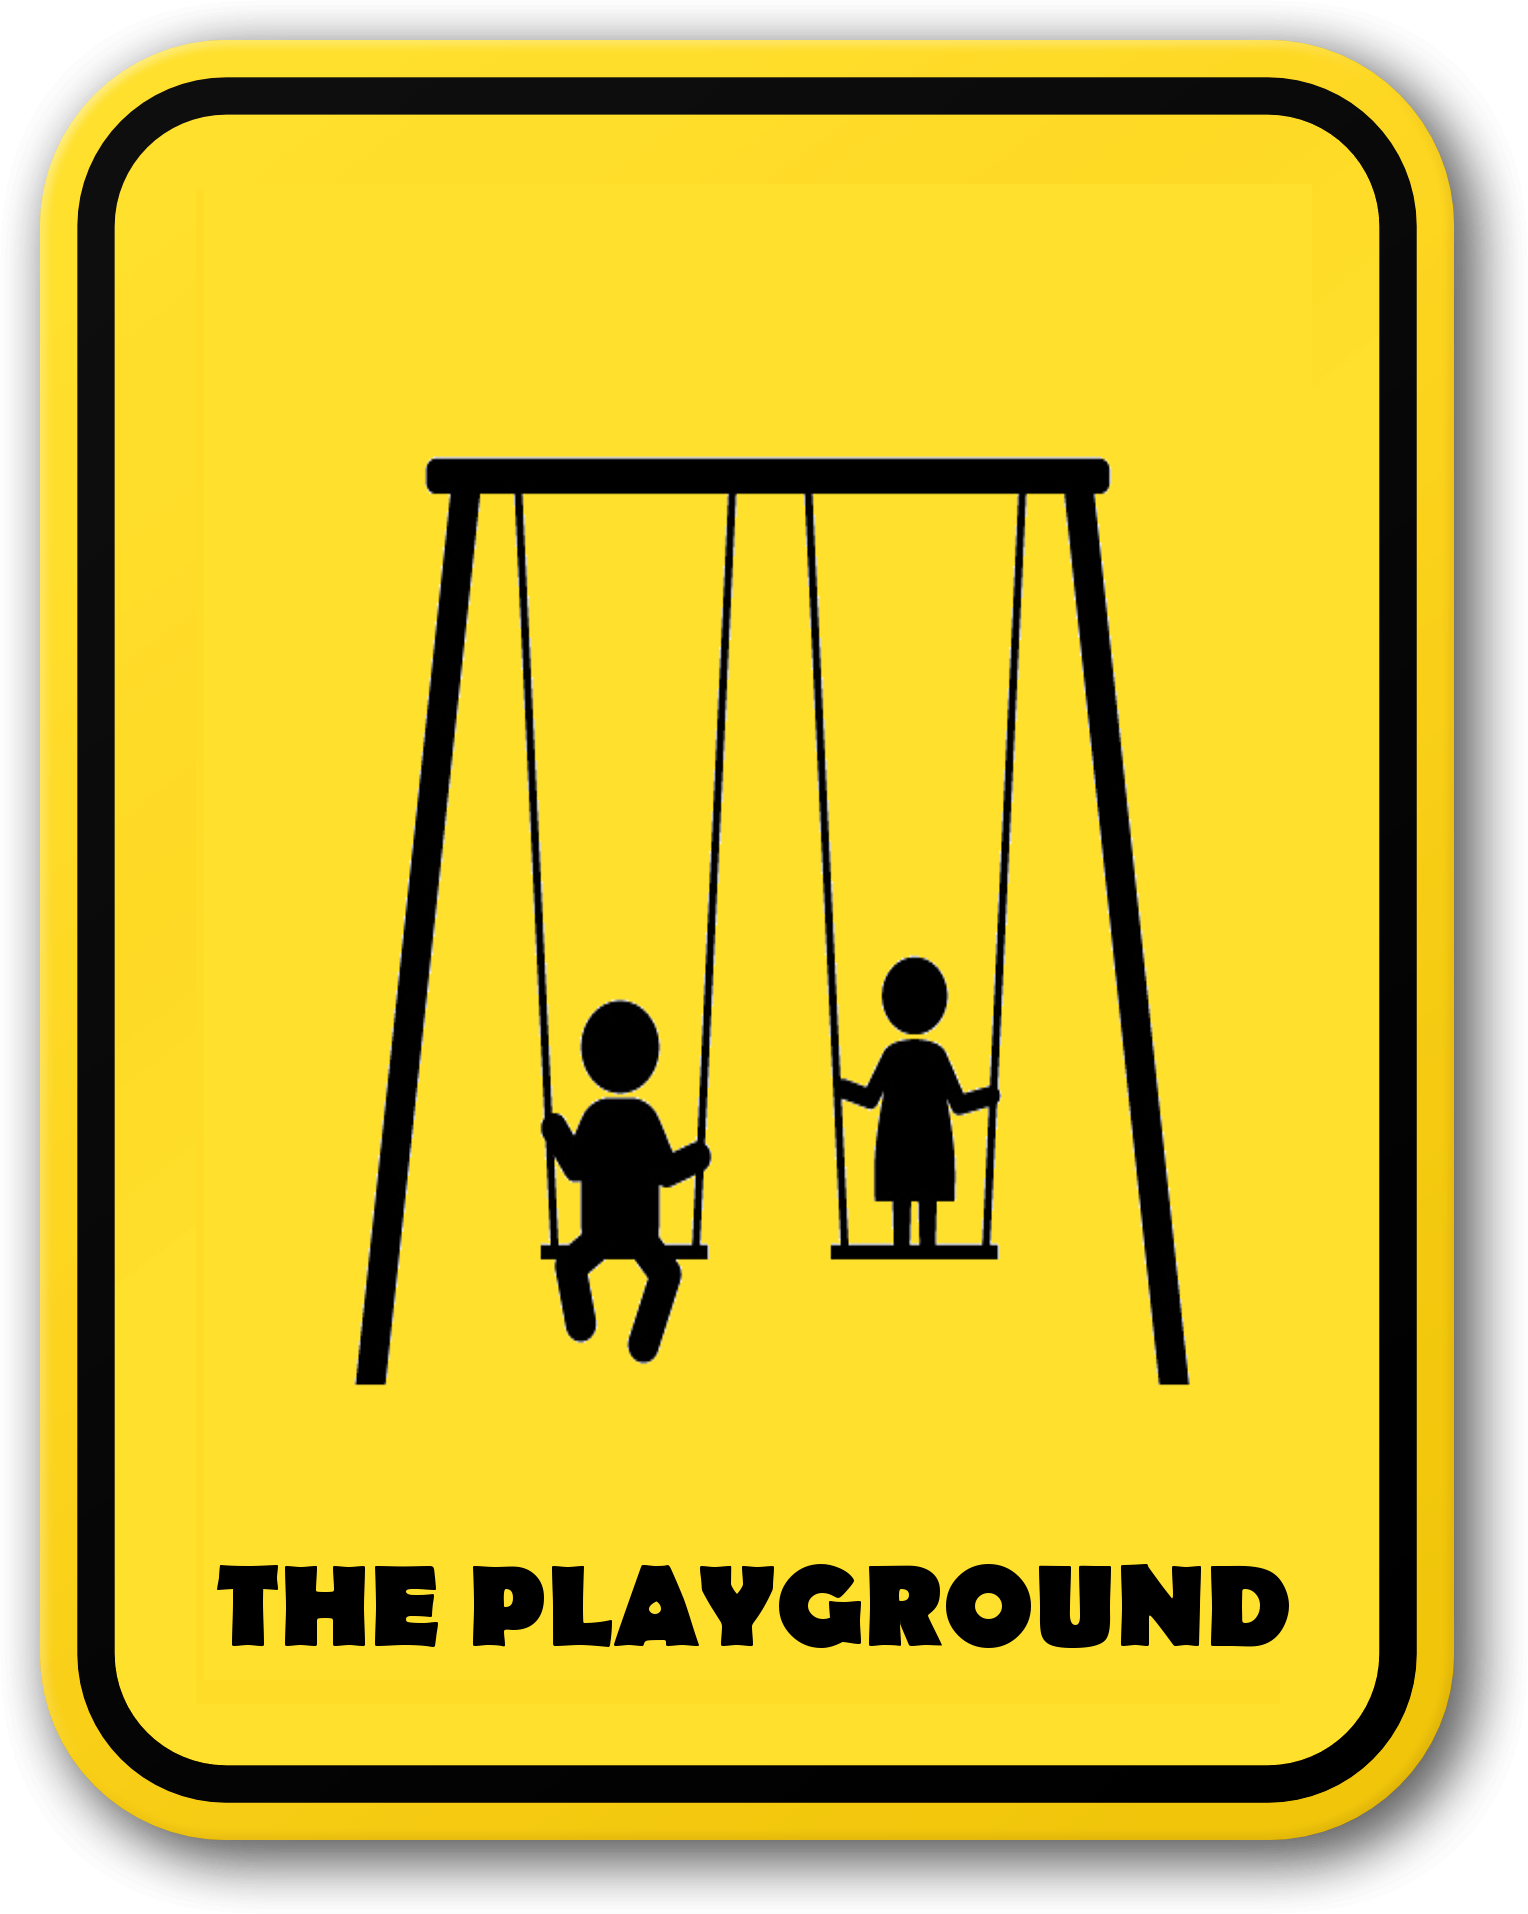 THE PLAYGROUND SIGN